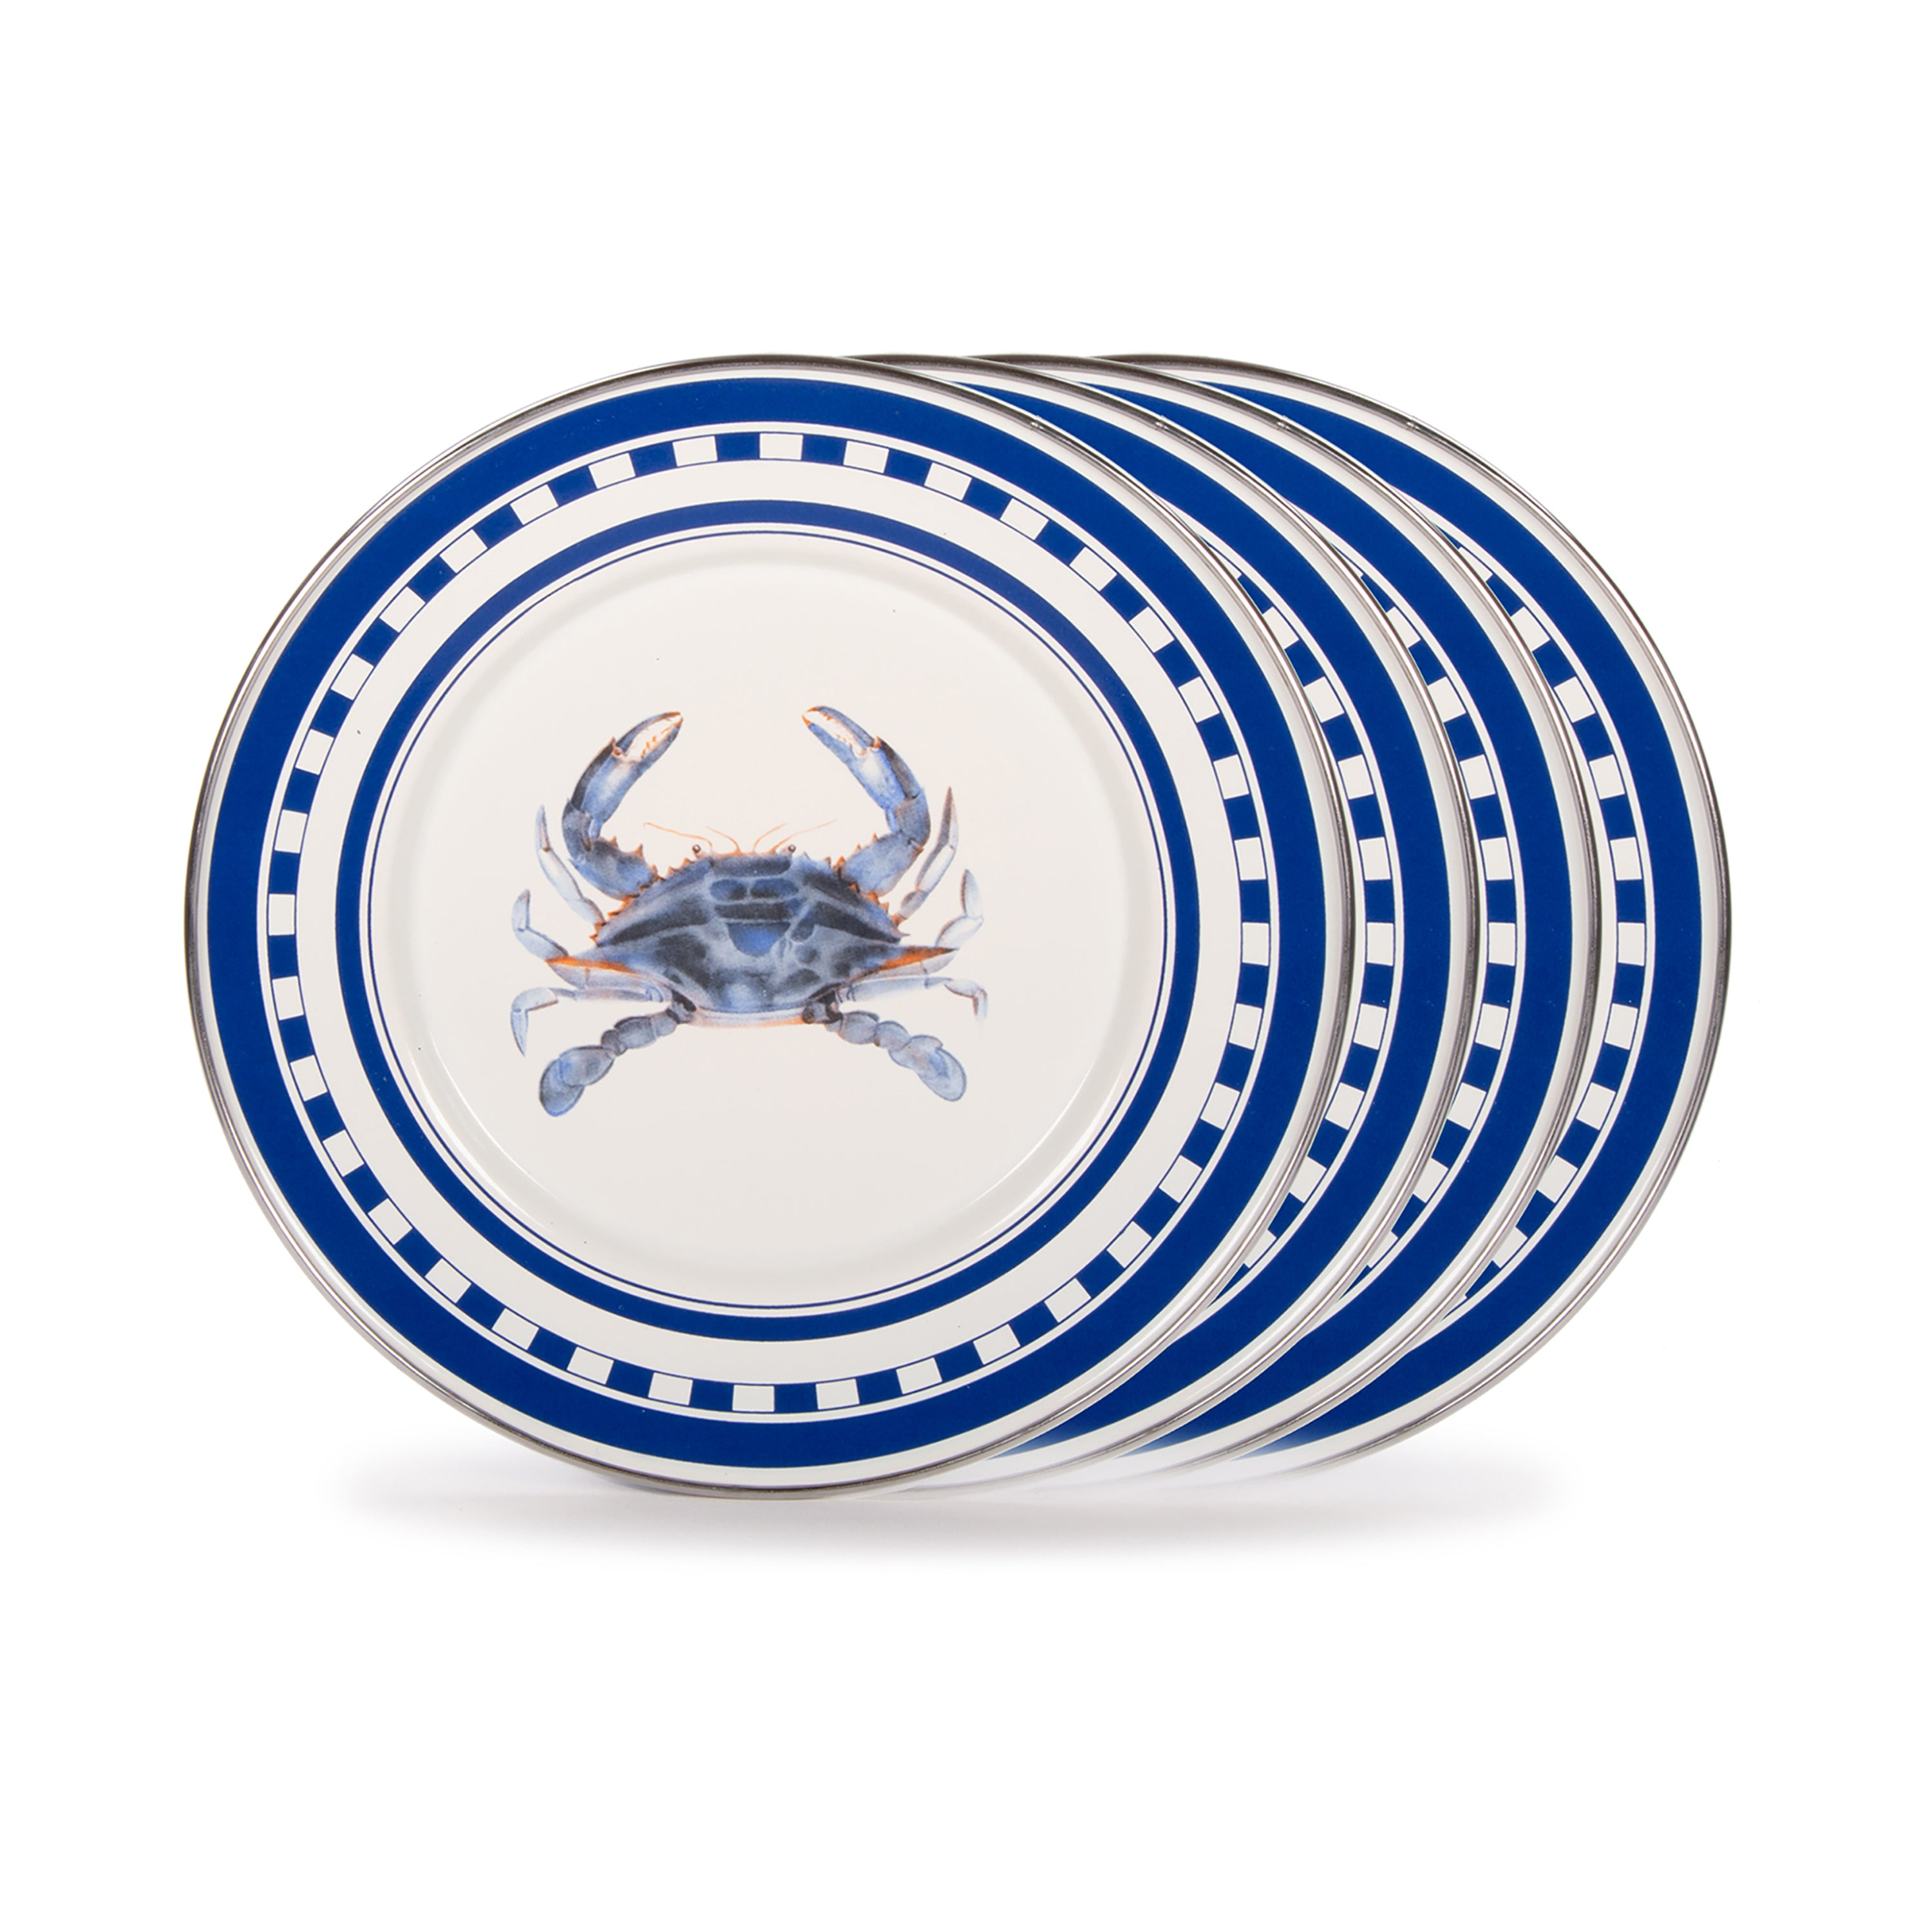 SE11S4 - Set of 4 Blue Crab Sandwich Plates Image 1